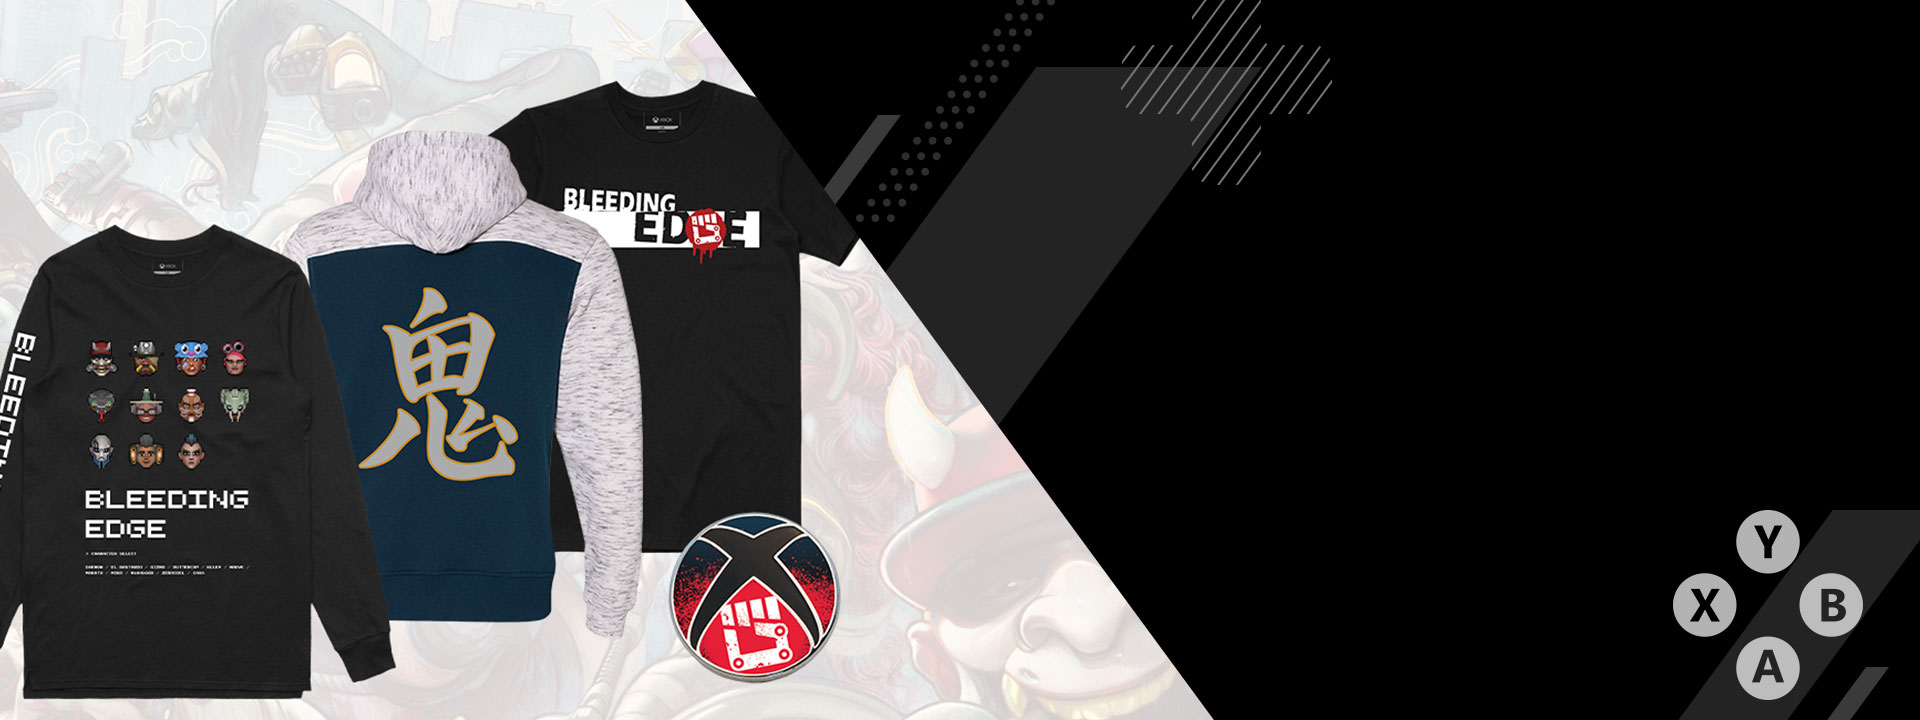 Bleeding Edge themed shirts and hoodies on a background of Bleeding Edge characters